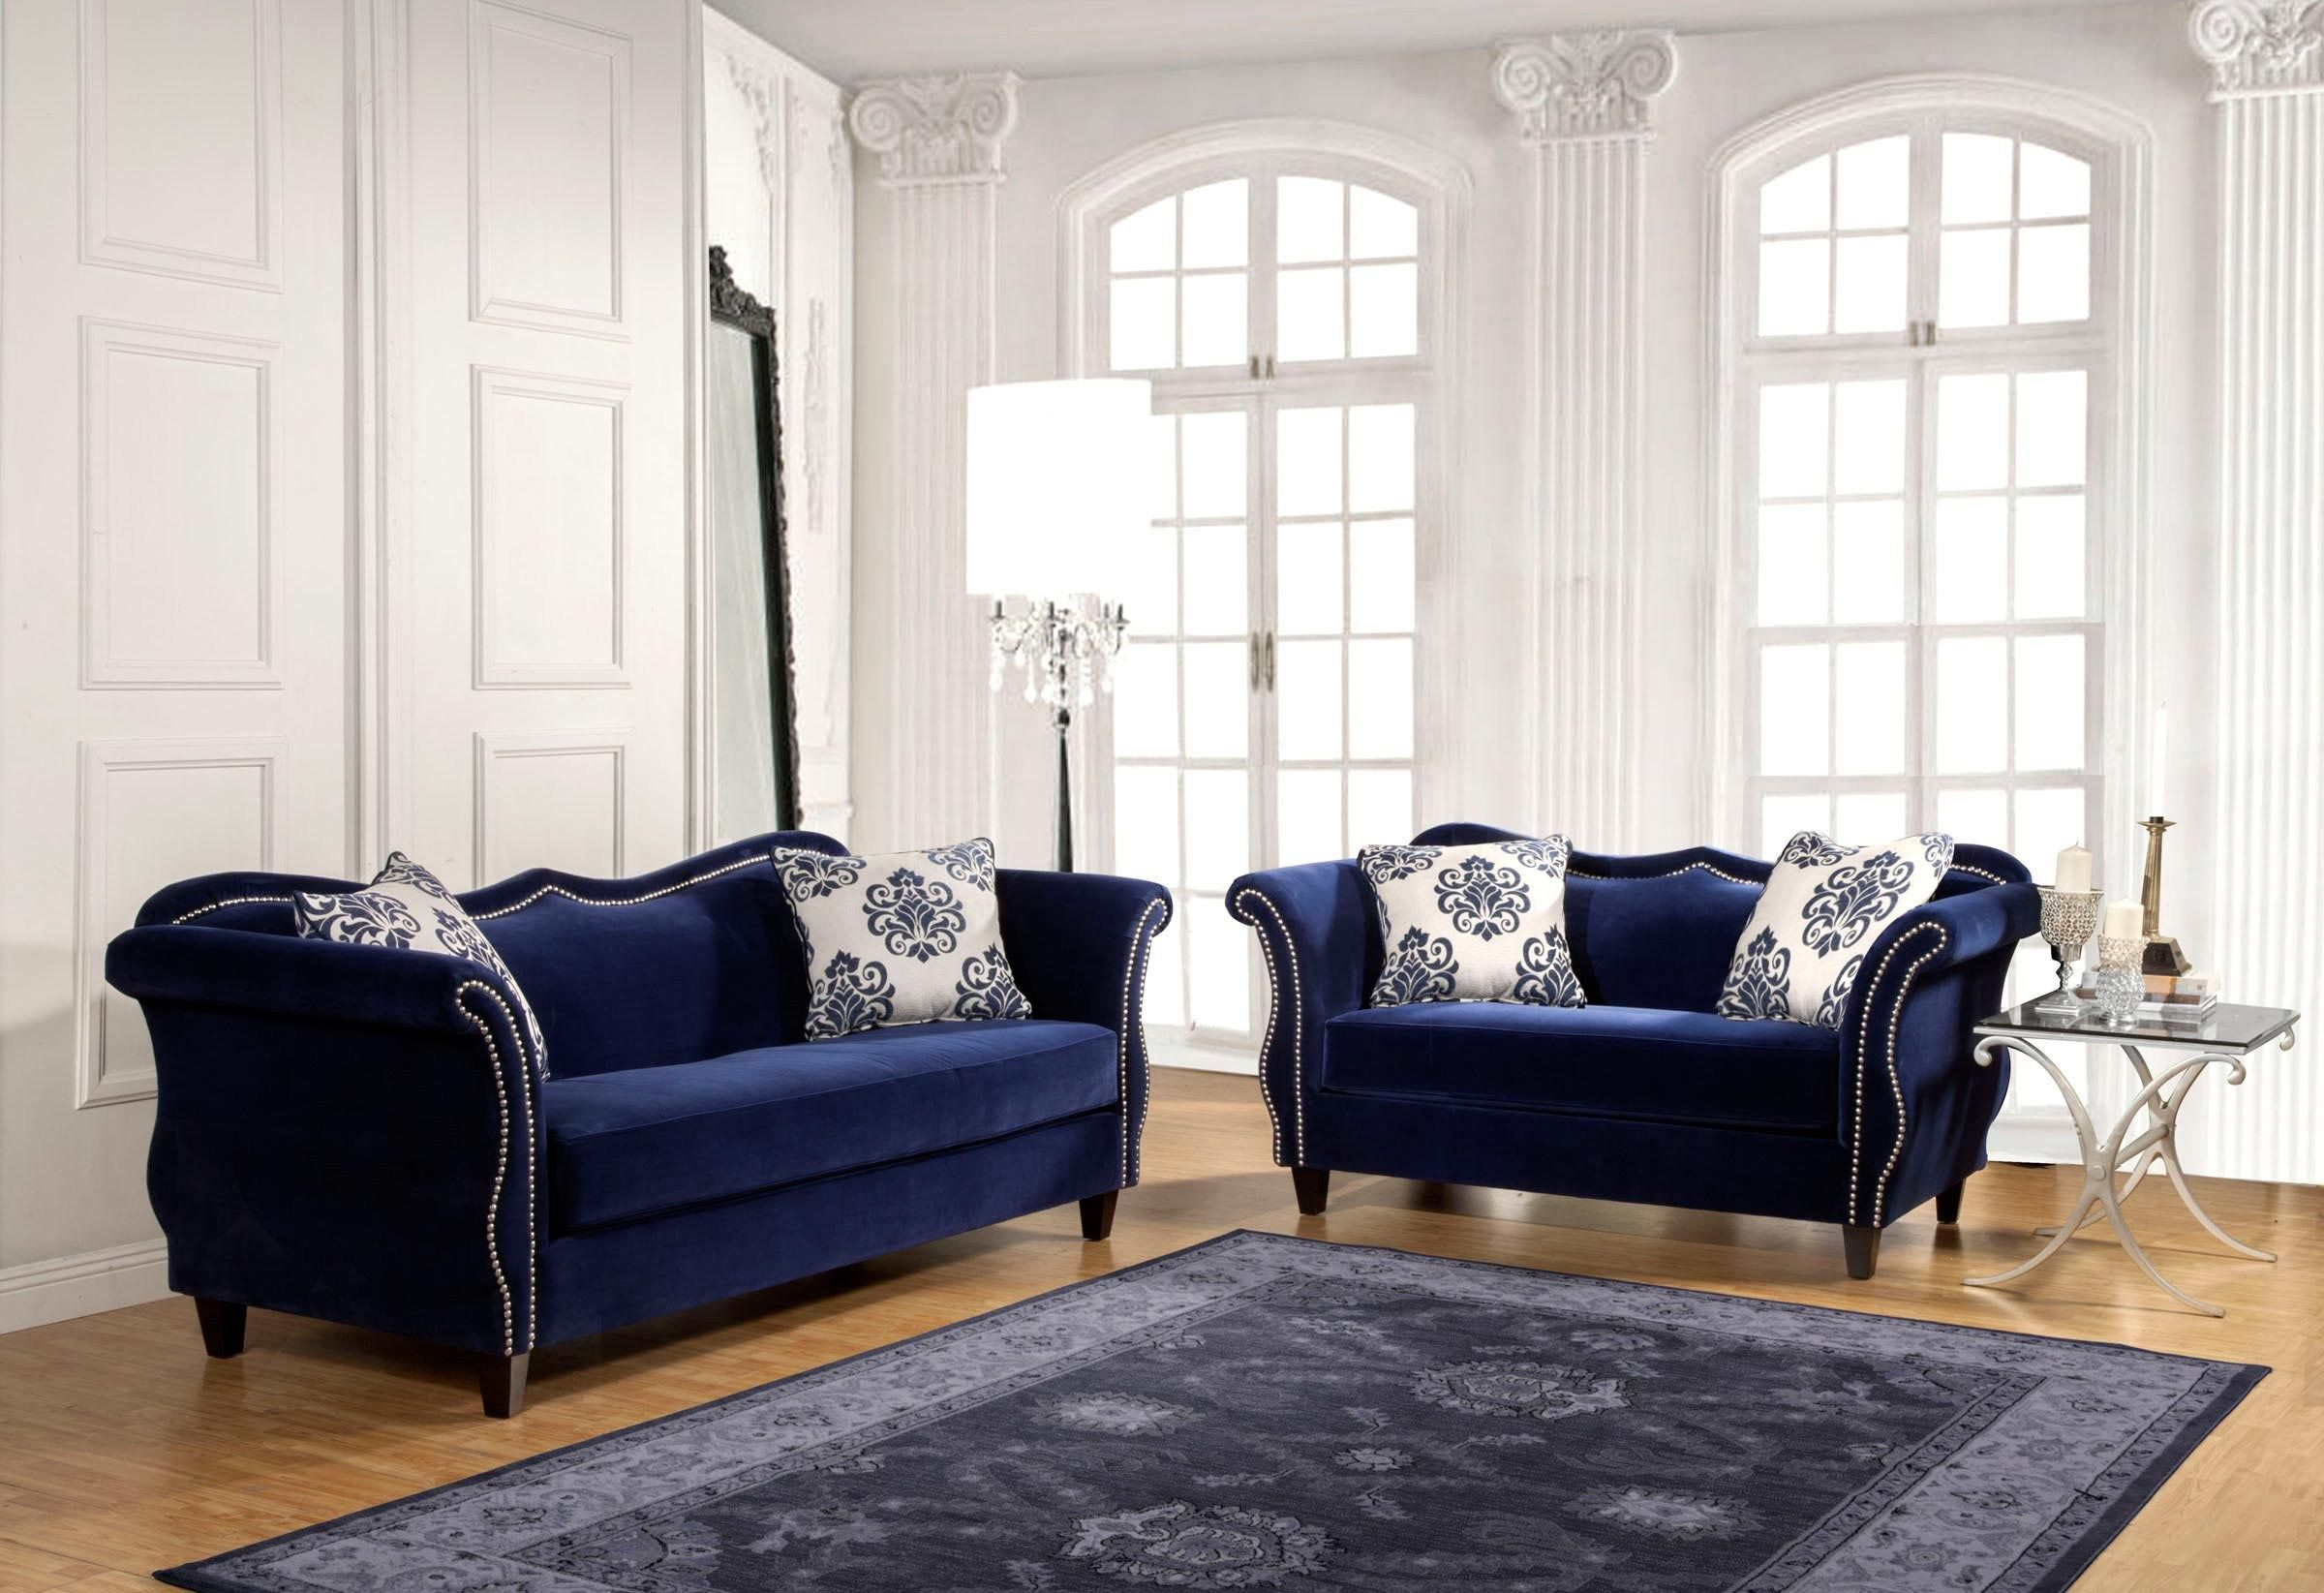 30 Awesome Picture Of Blue Couch Living Room Janicereyesphotography Com Muebles De Sala Modernos Sofa Azul Marino Muebles Sala